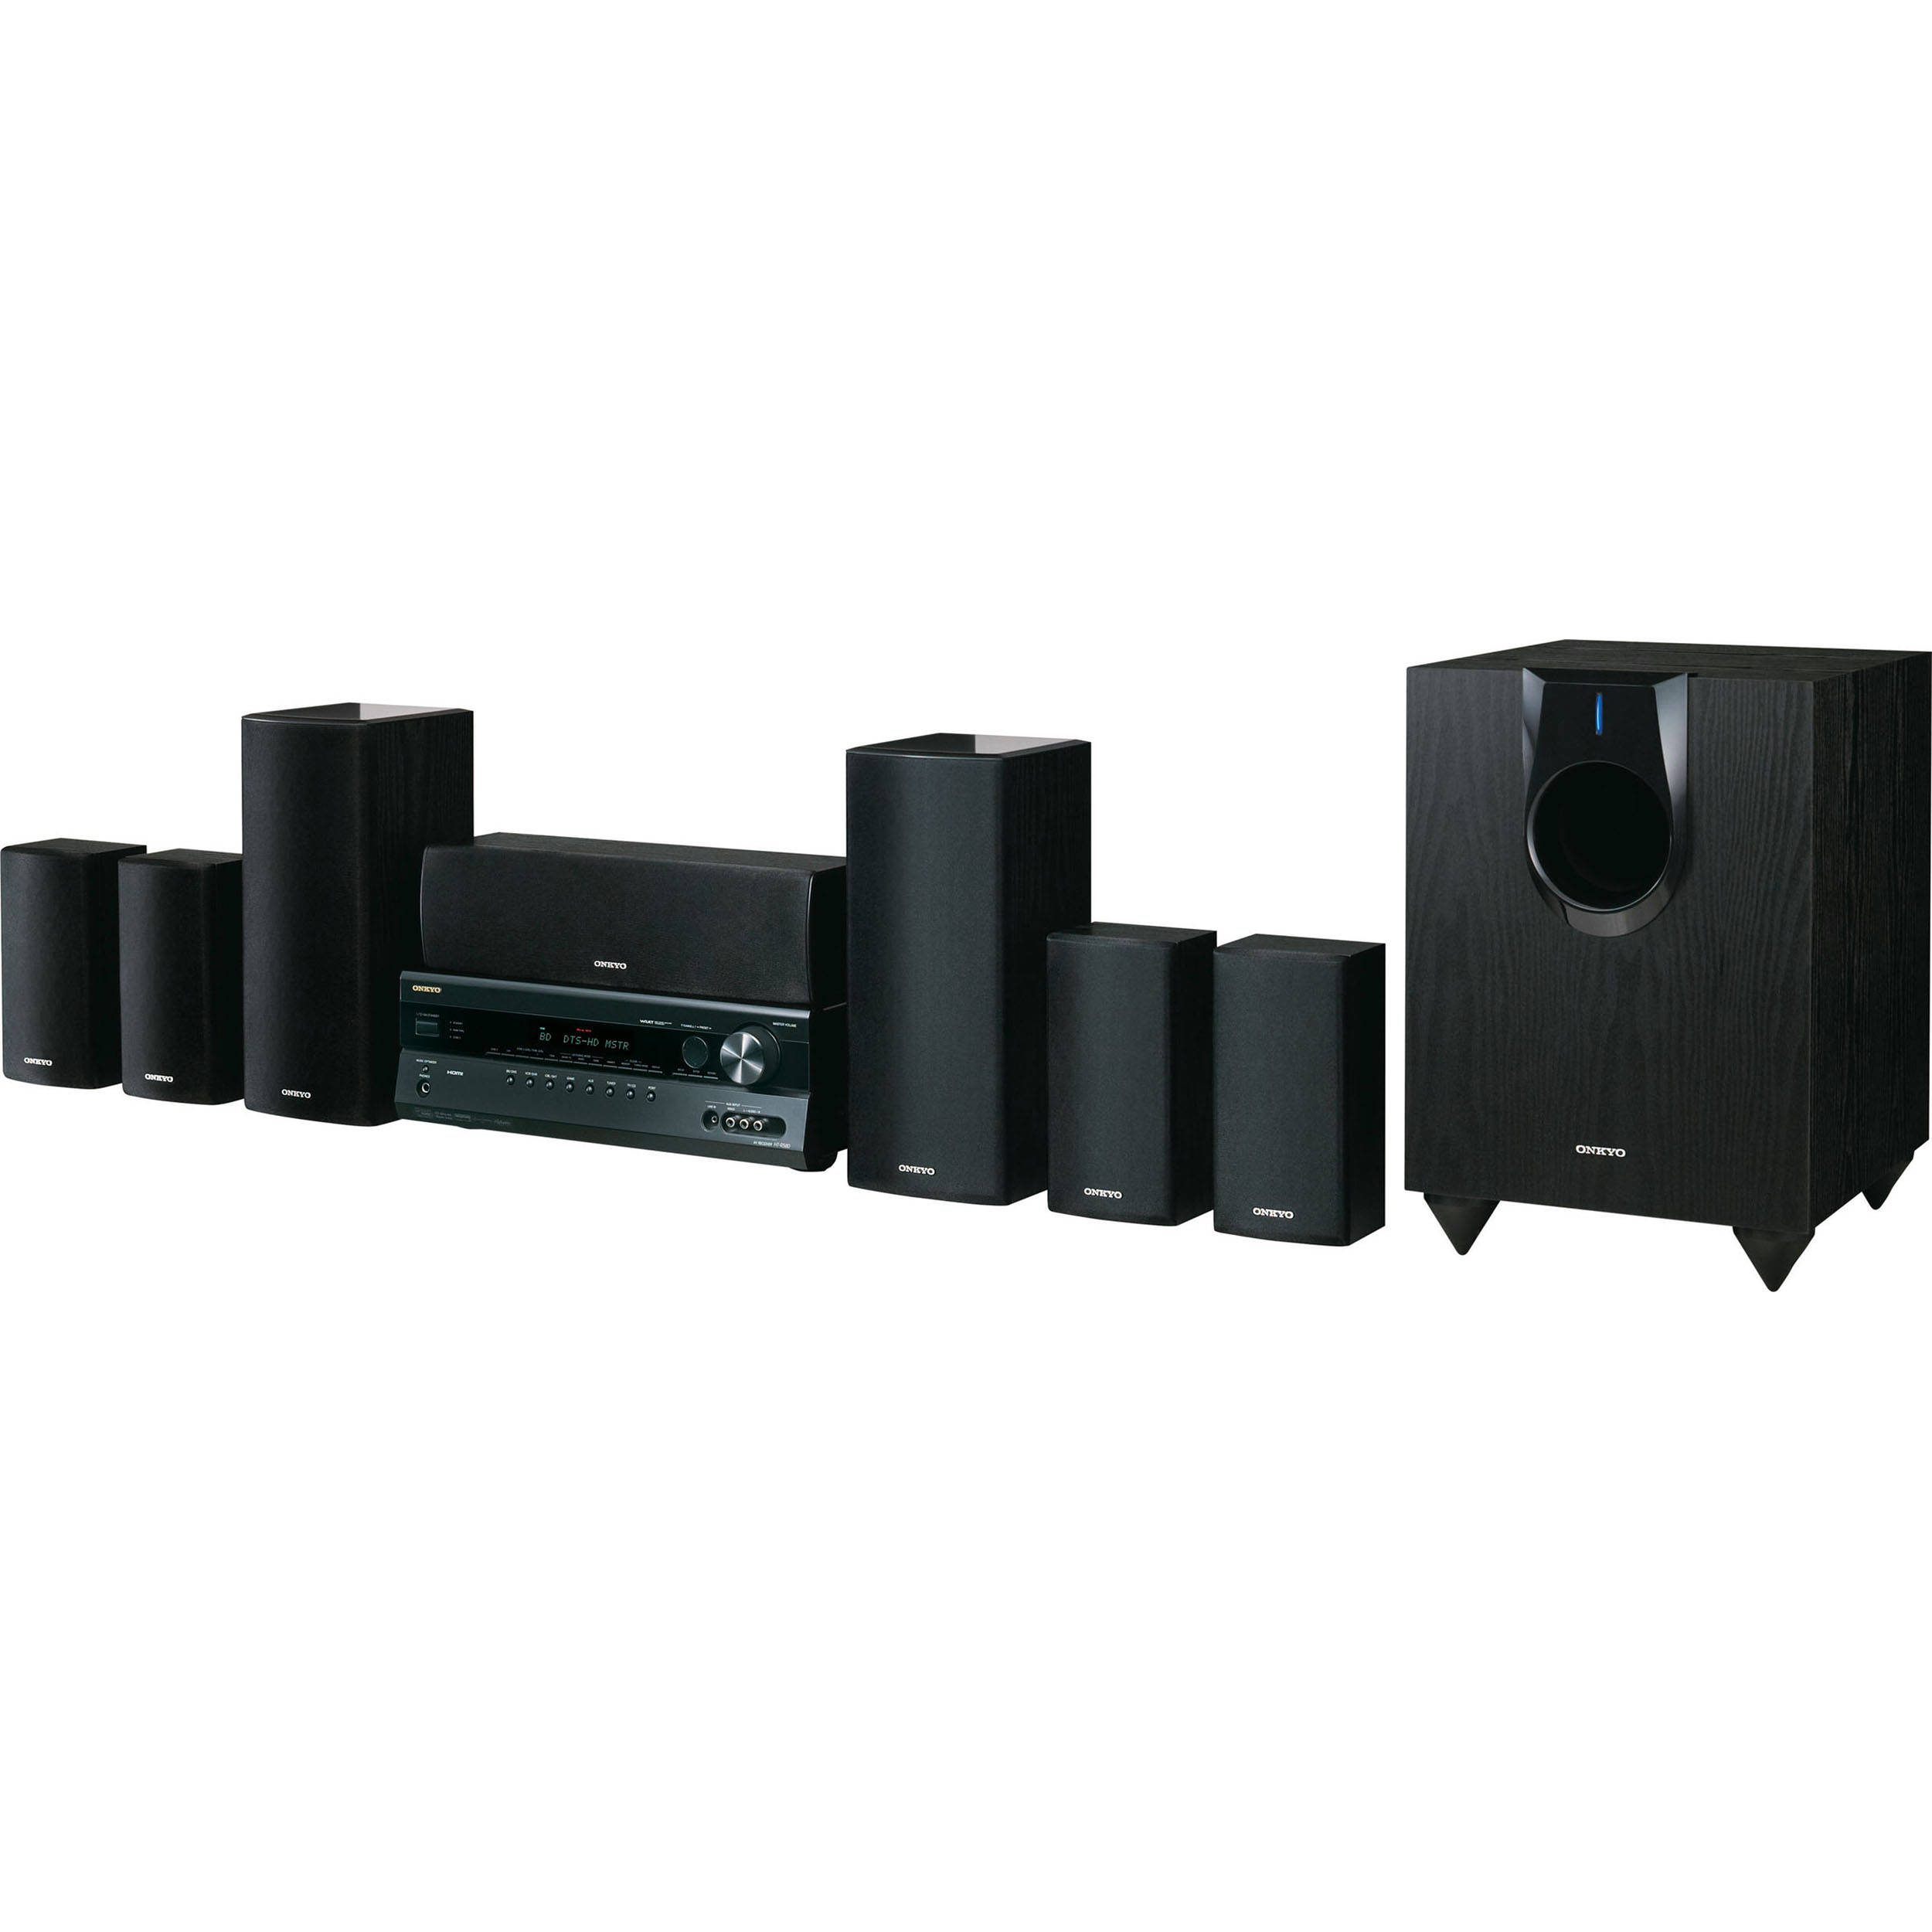 onkyo ht s5300 7 1 channel home theater system ht s5300 b h. Black Bedroom Furniture Sets. Home Design Ideas